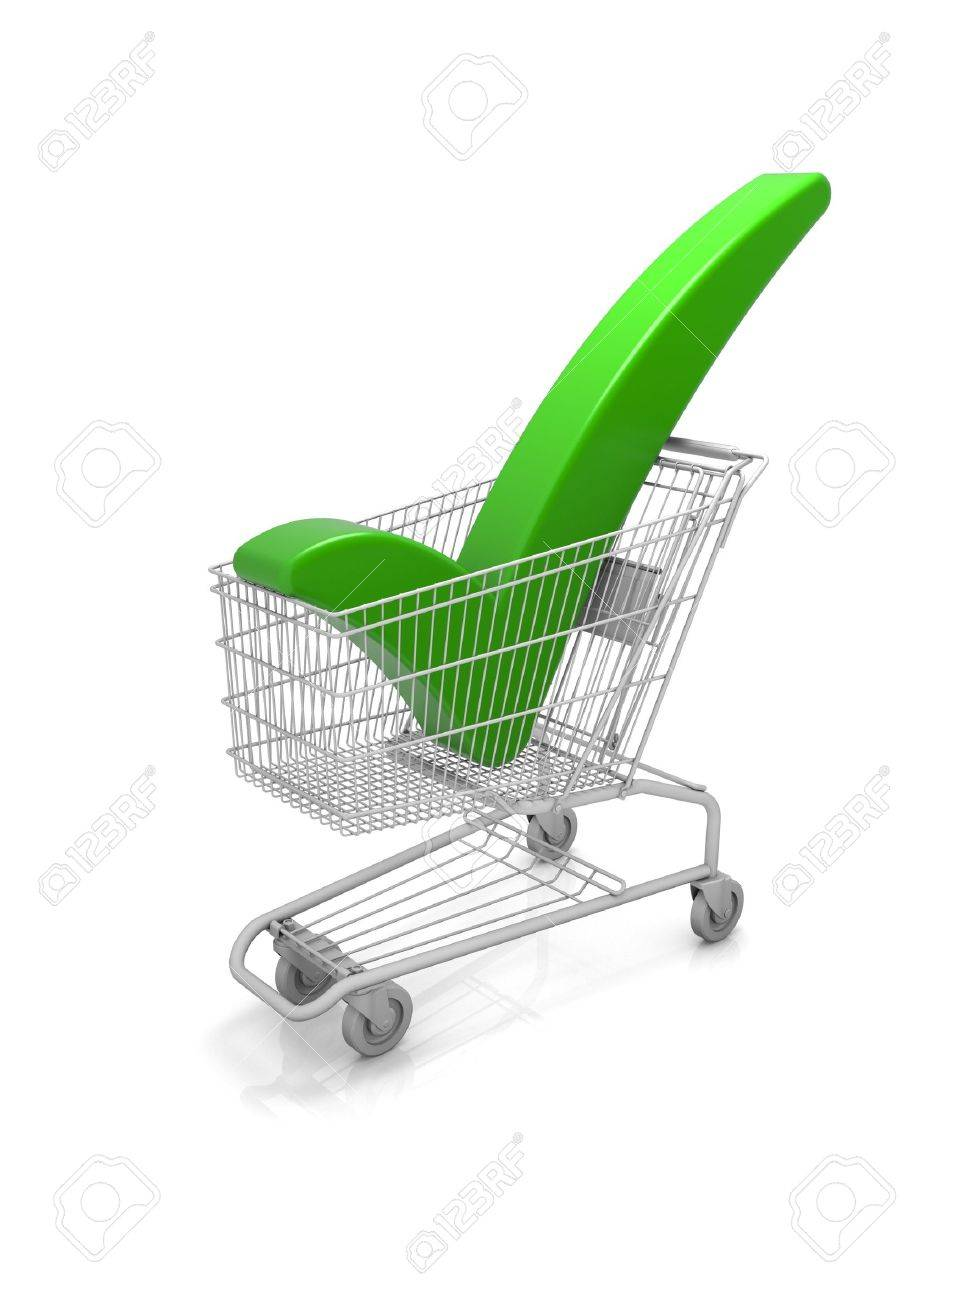 Shopping cart with a green check mark. Part of a series. Stock Photo - 6180719